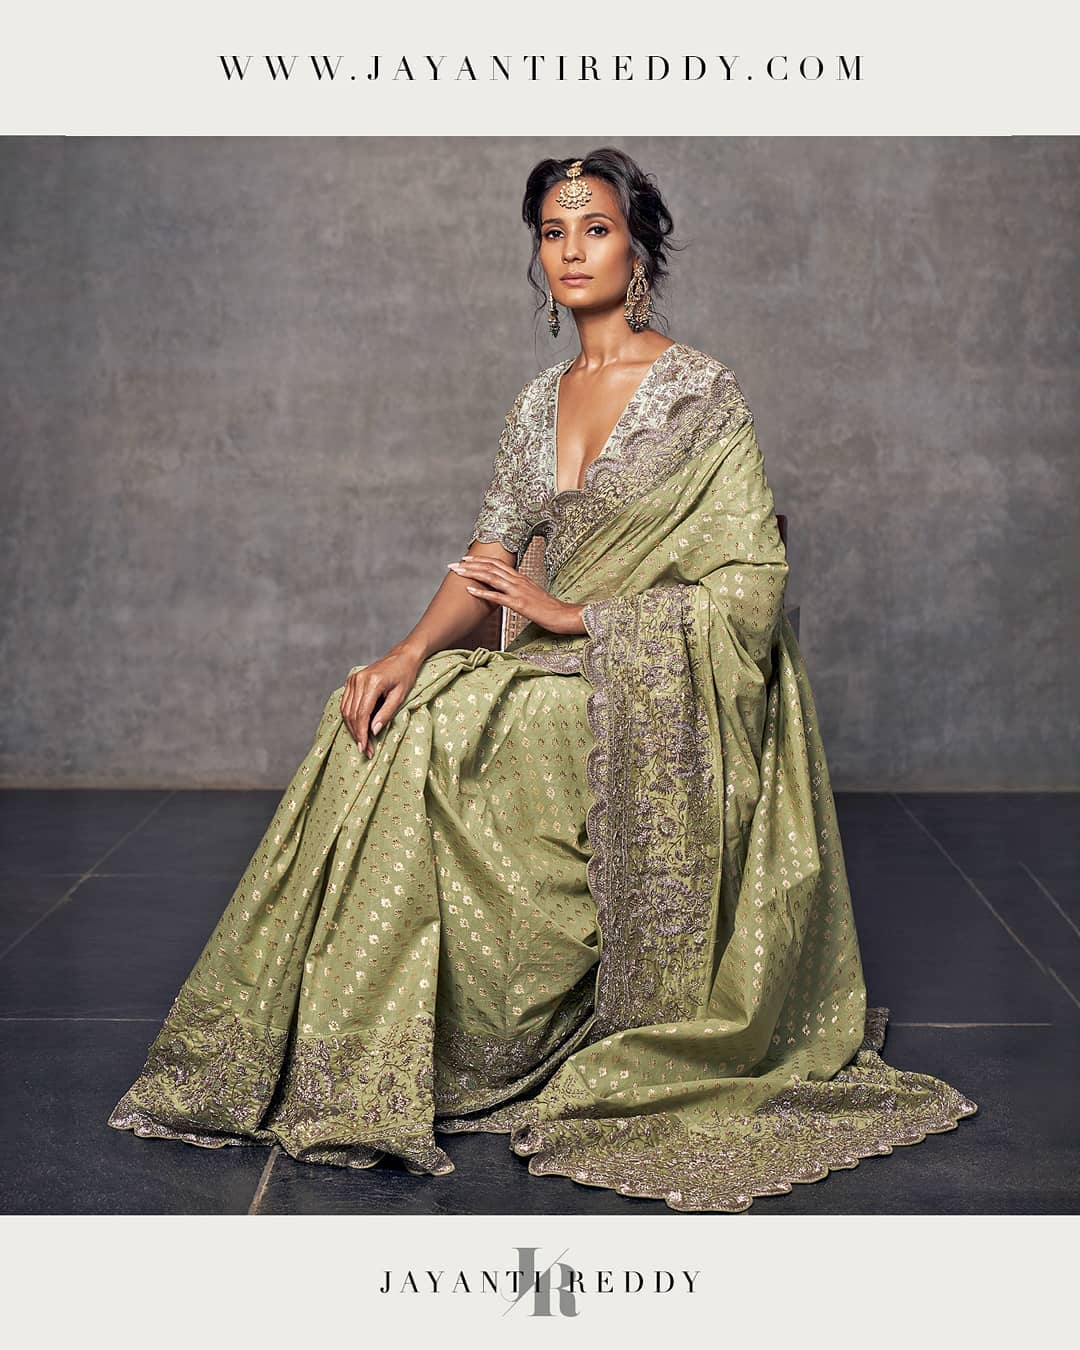 The Jayanti Reddy label epitomizes an elegant and relatively understated sense of style with a strong emphasis on naturally dyed handwoven textiles that are embellished with intricate hand embroidery.  2021-01-13